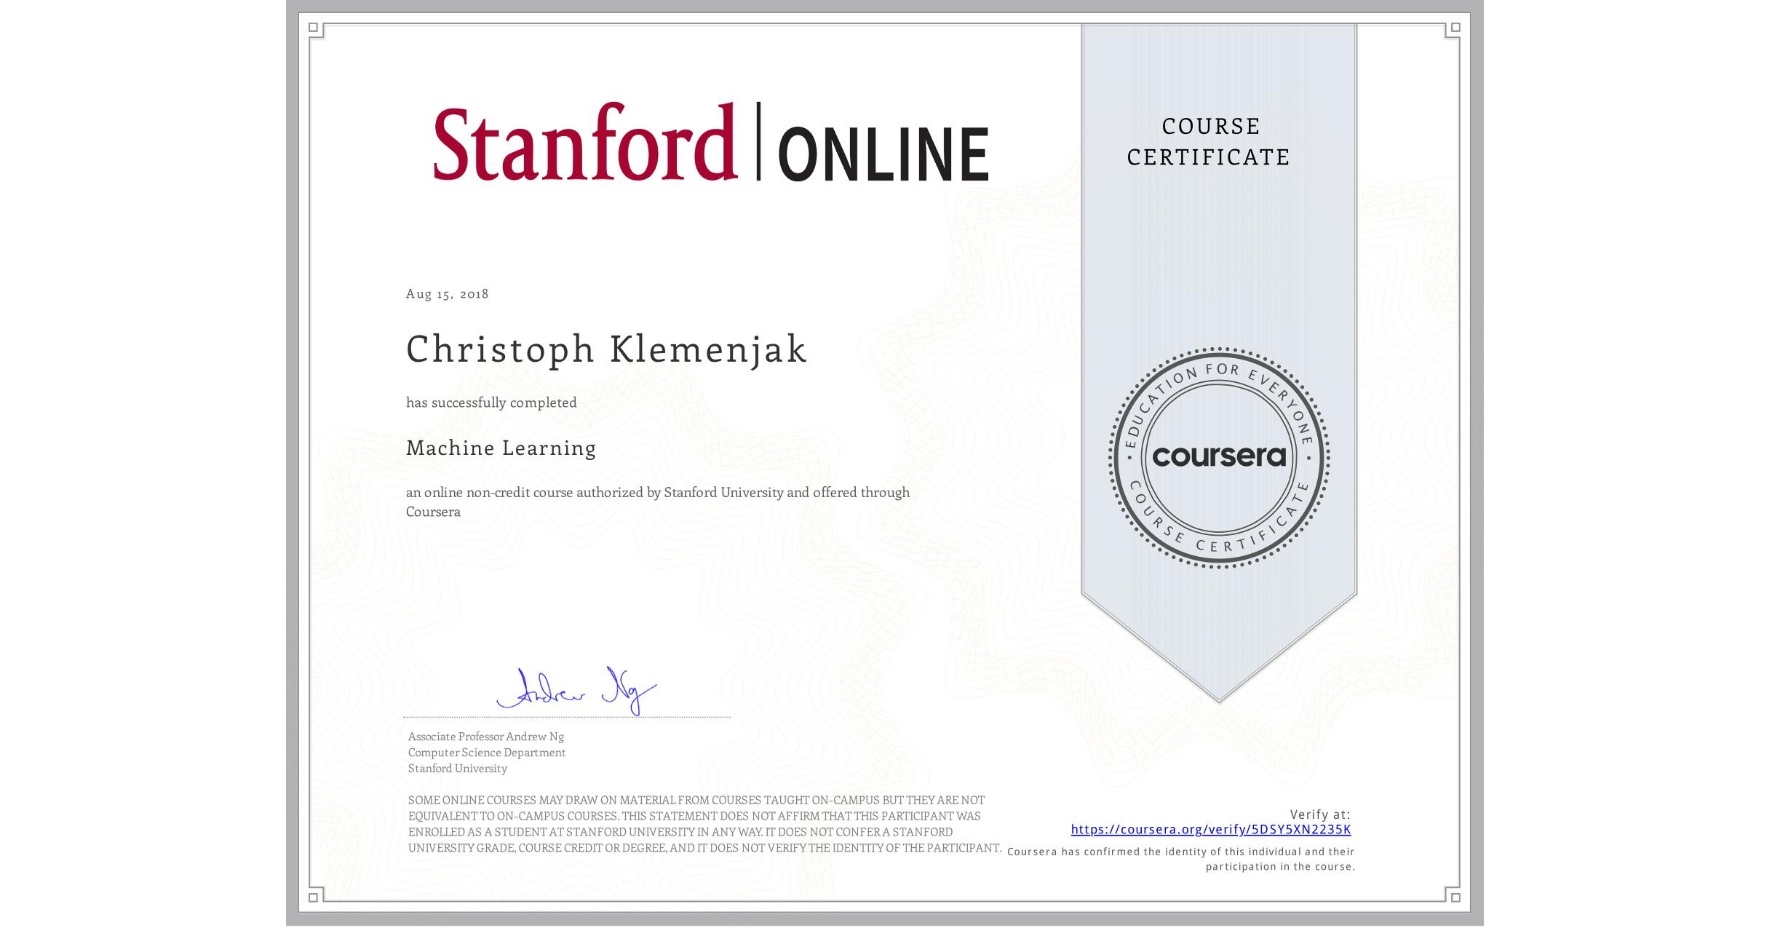 View certificate for Christoph Klemenjak, Machine Learning, an online non-credit course authorized by Stanford University and offered through Coursera